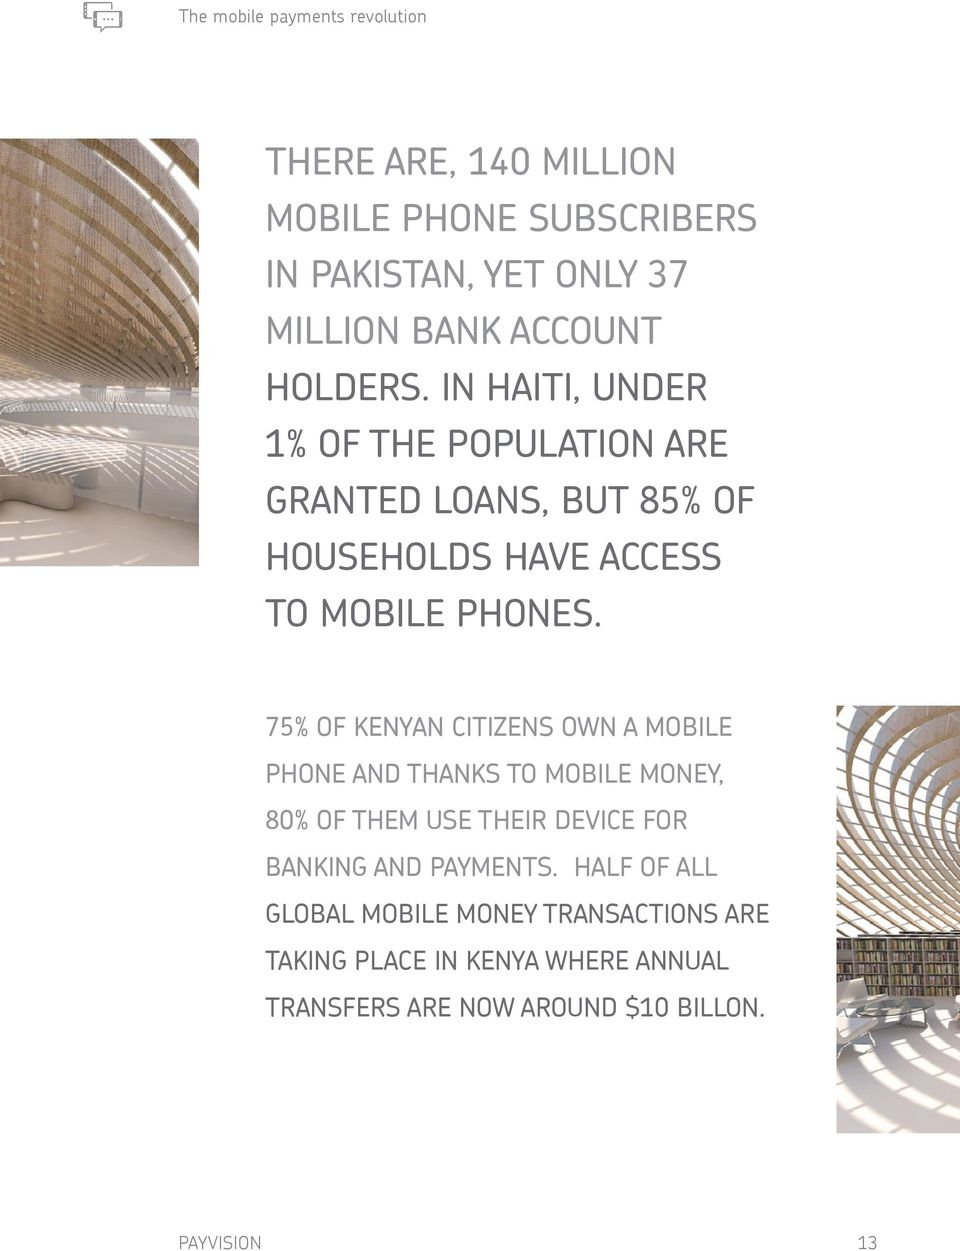 75% of Kenyan citizens own a mobile phone and thanks to mobile money, 80% of them use their device for banking and